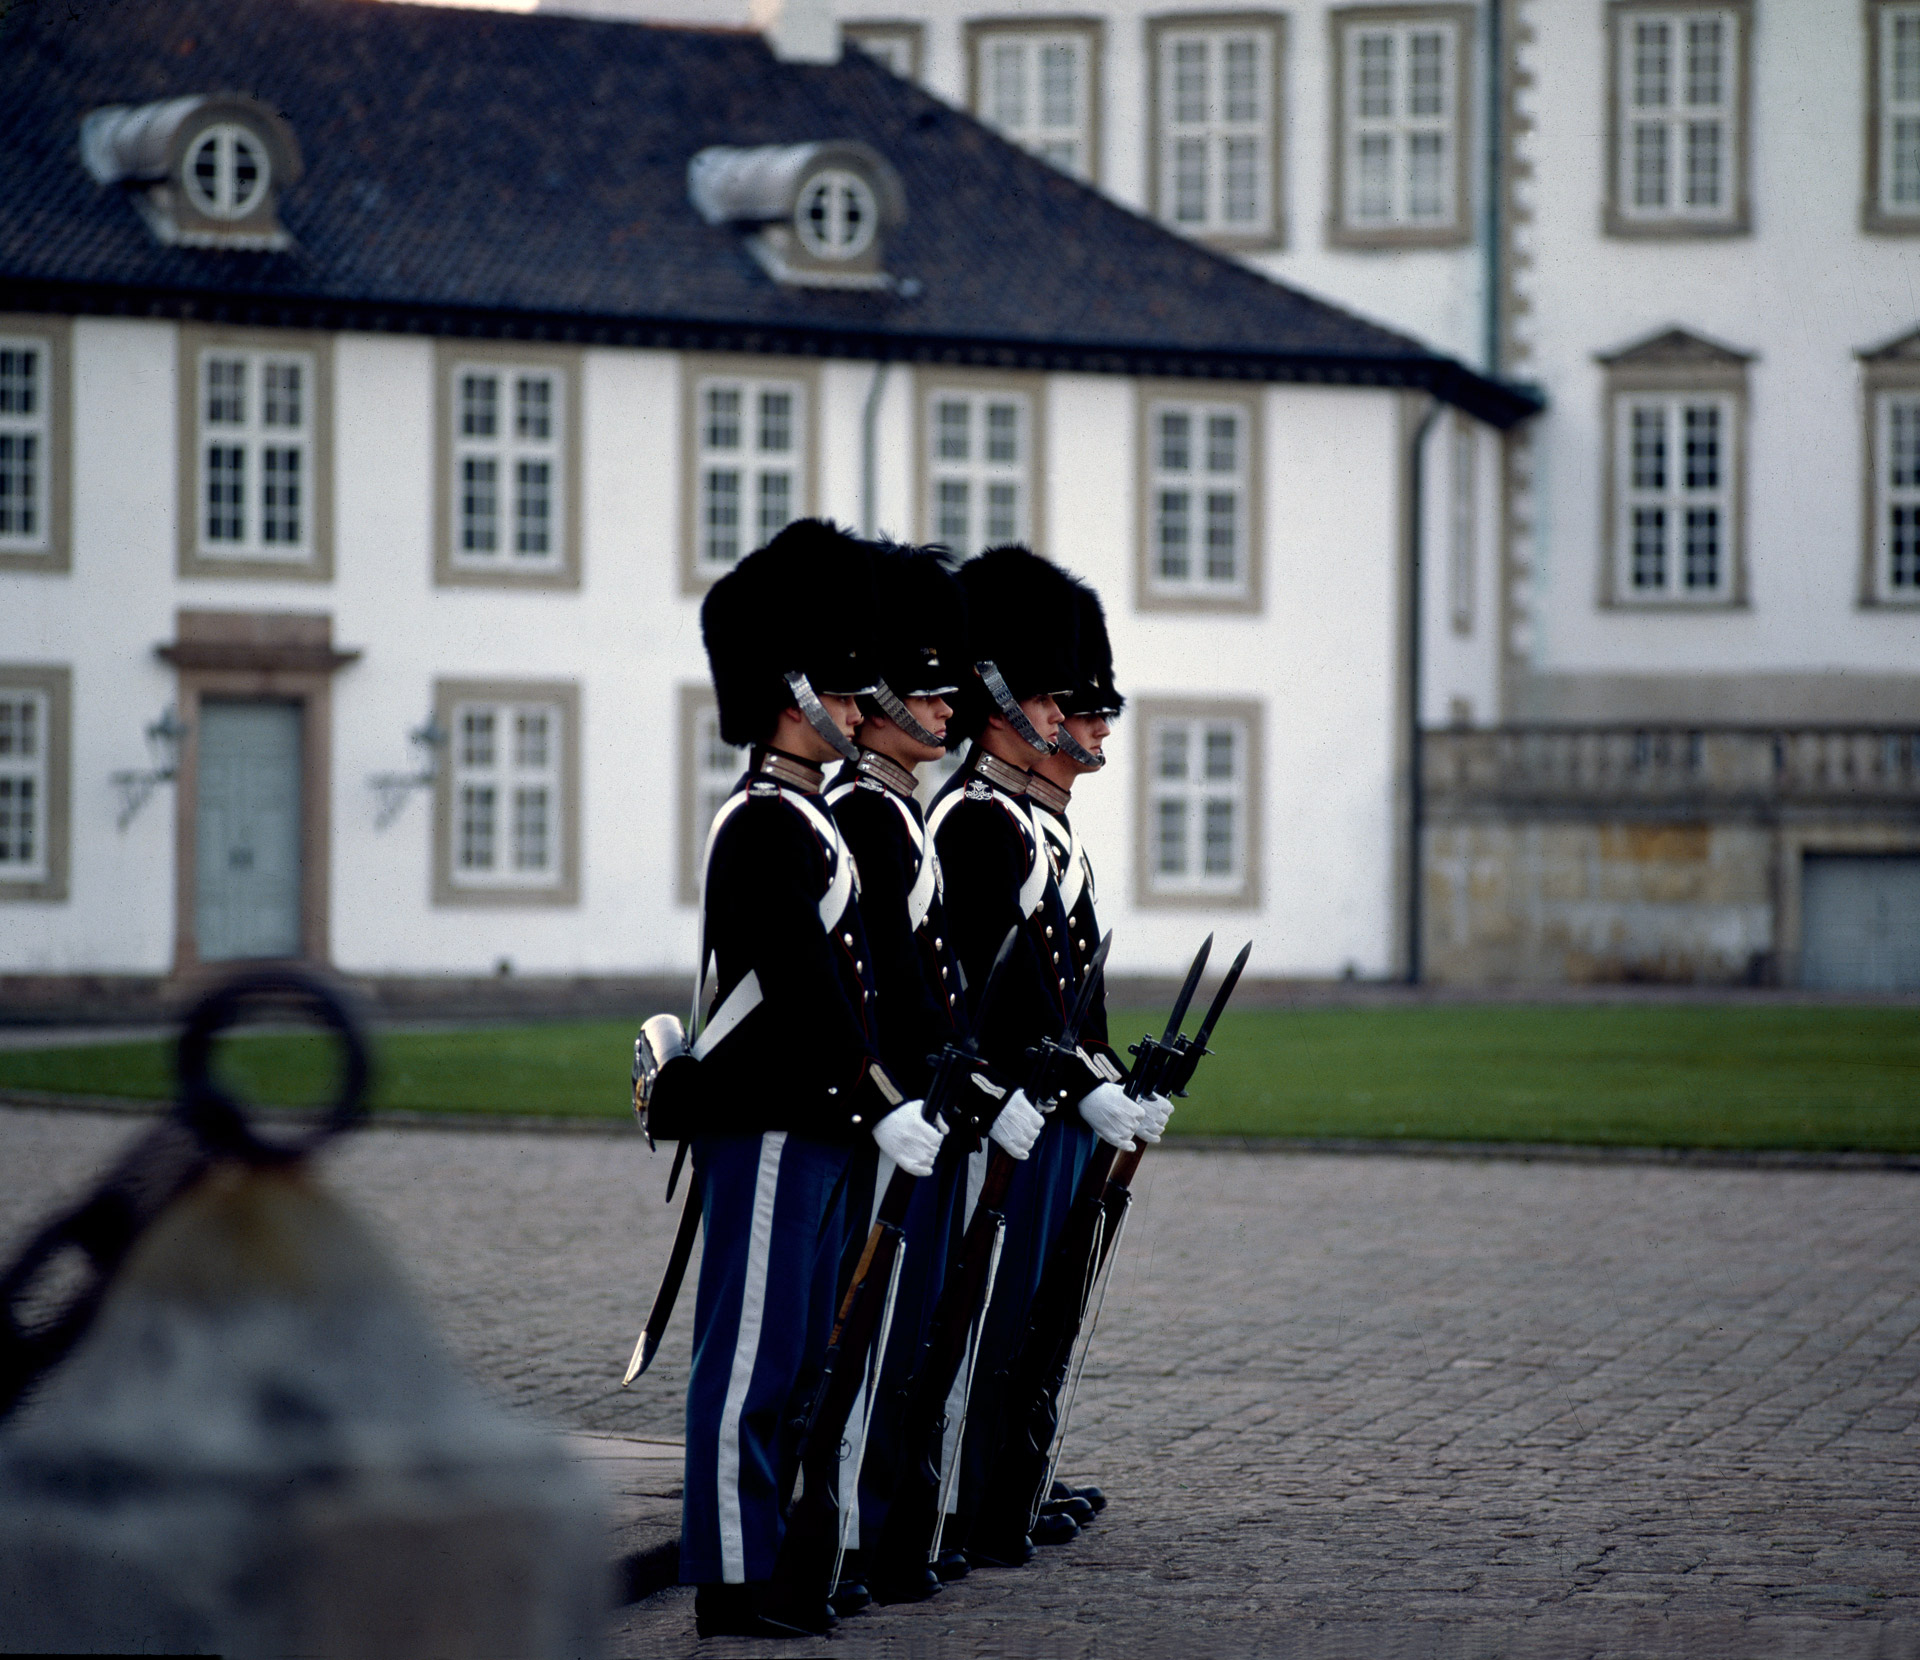 Soldiers from the royal guard at Fredensborg castle